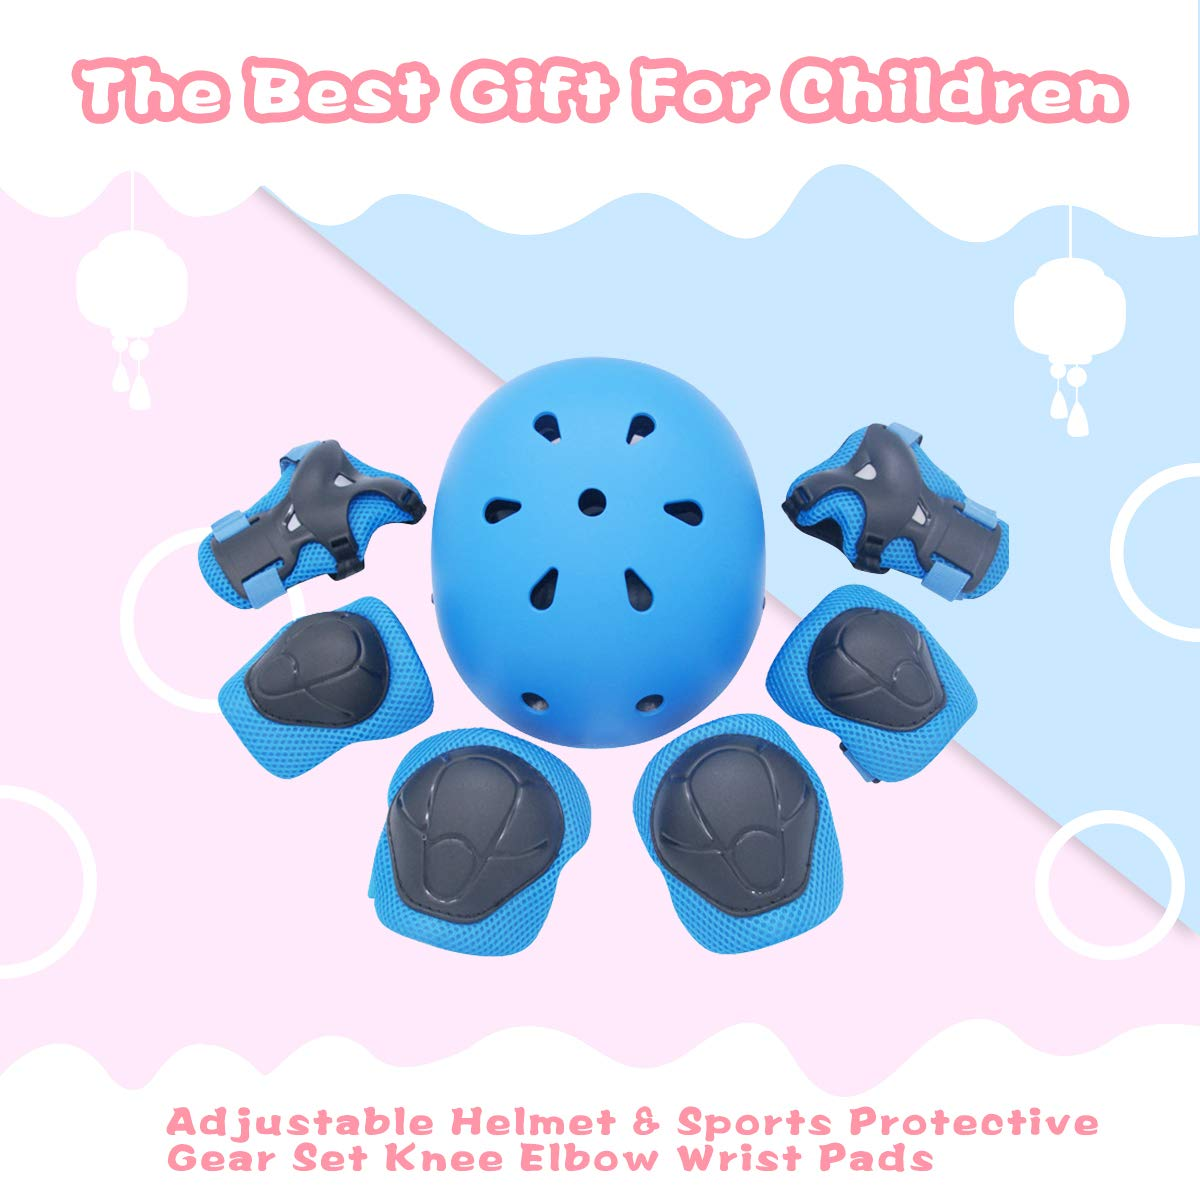 Airgymfactory 2-in-1 3 Wheel Kick Scooter with Removable Seat Great for Kids /& Toddlers Girls or Boys Foldable Portable Adjustable Height Extra Wide Deck PU Flashing Wheels for Children